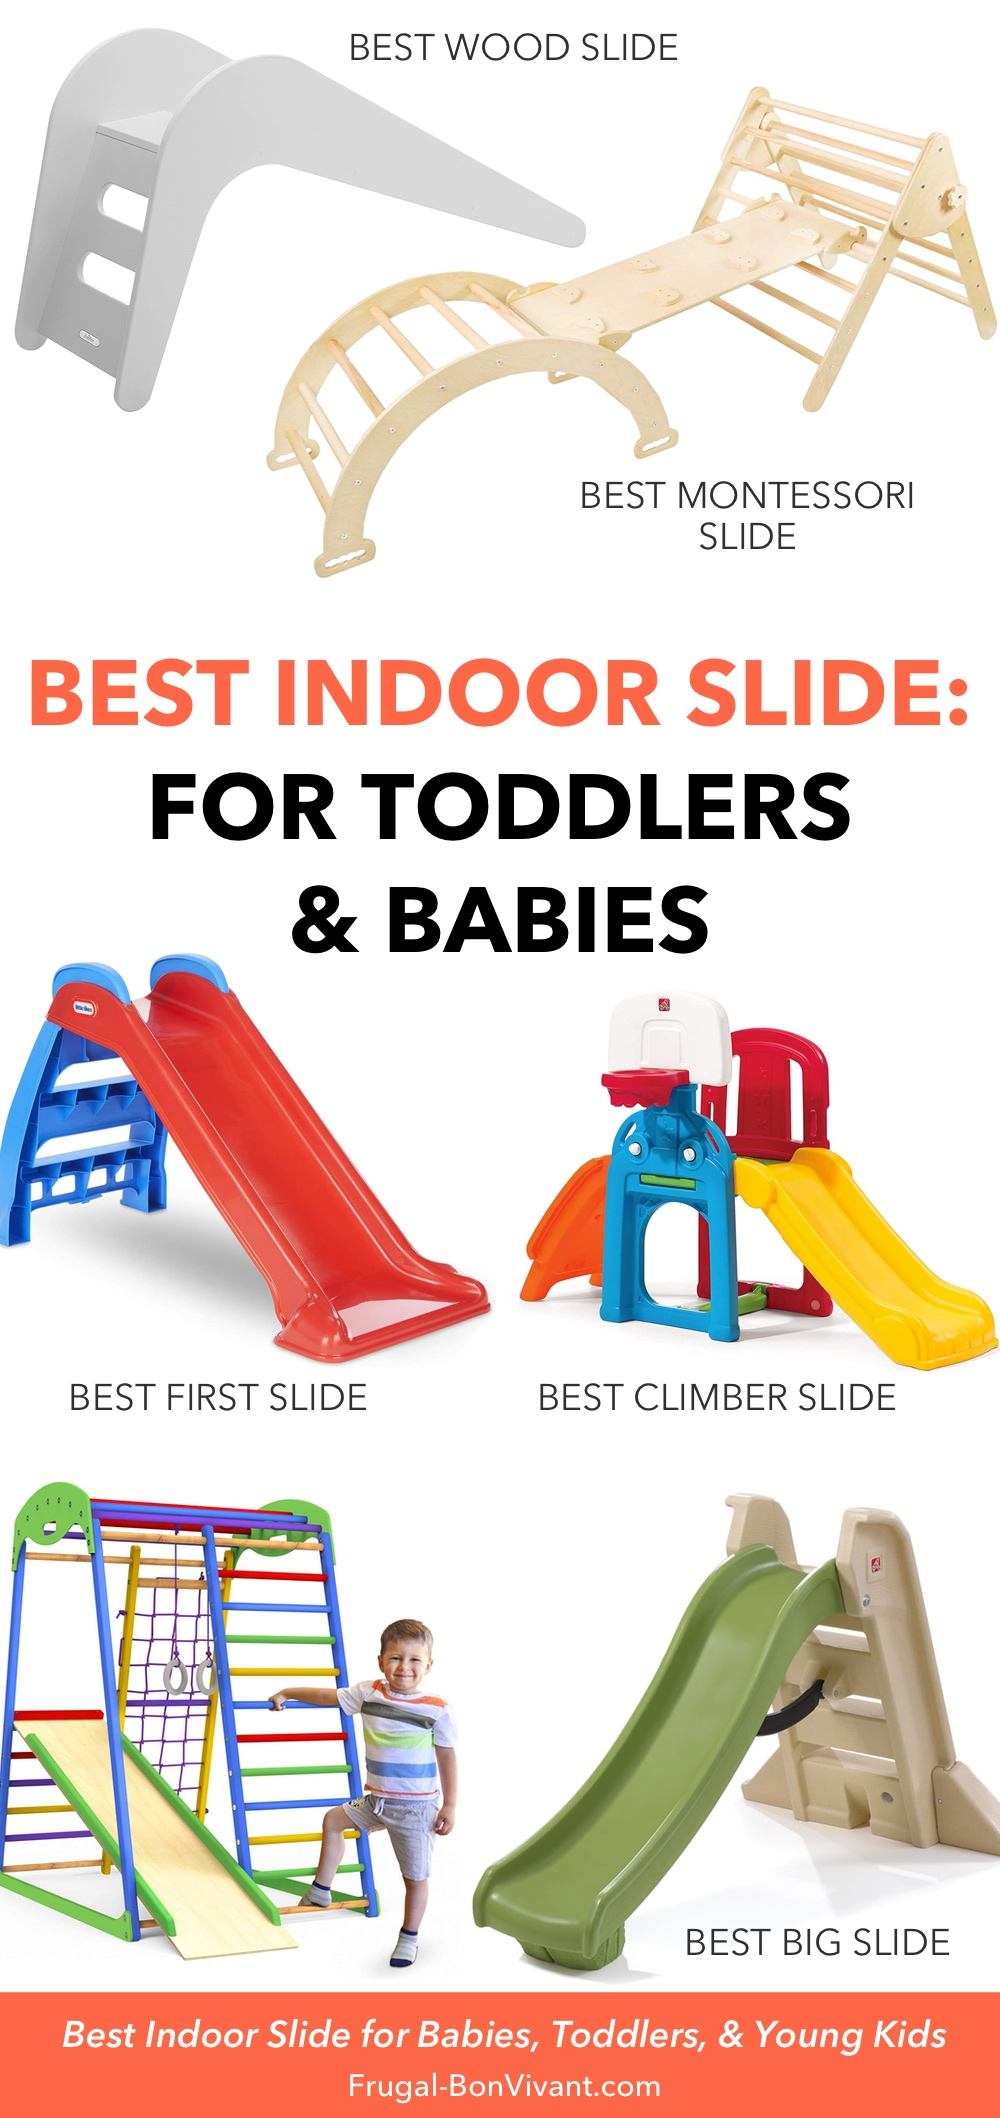 Best indoor slide for toddlers, babies and young kids infographic